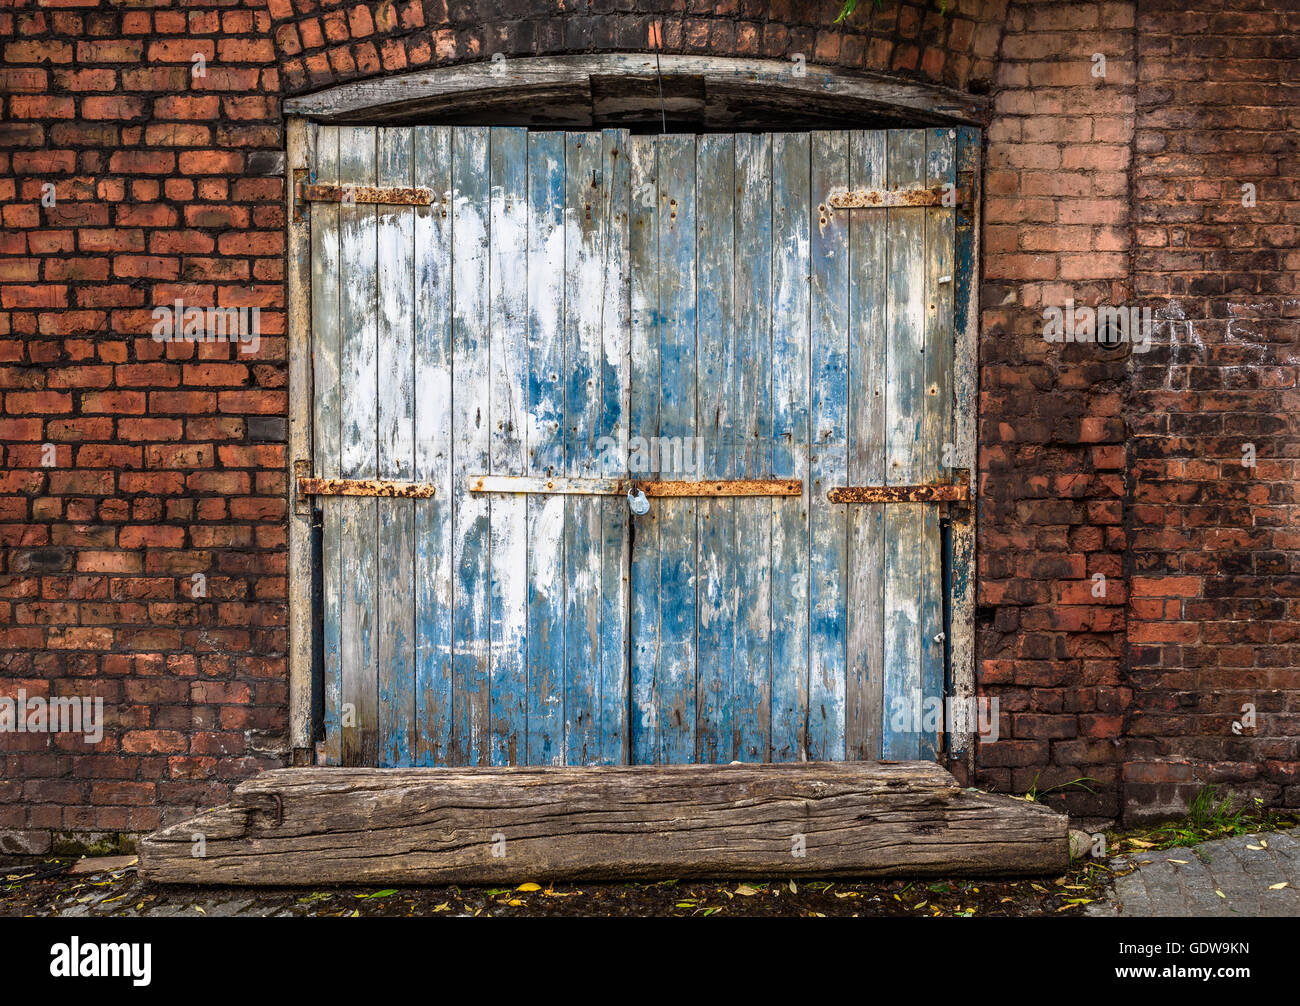 Old brick warehouse shed with grungy wooden doors. & Old brick warehouse shed with grungy wooden doors Stock Photo ...